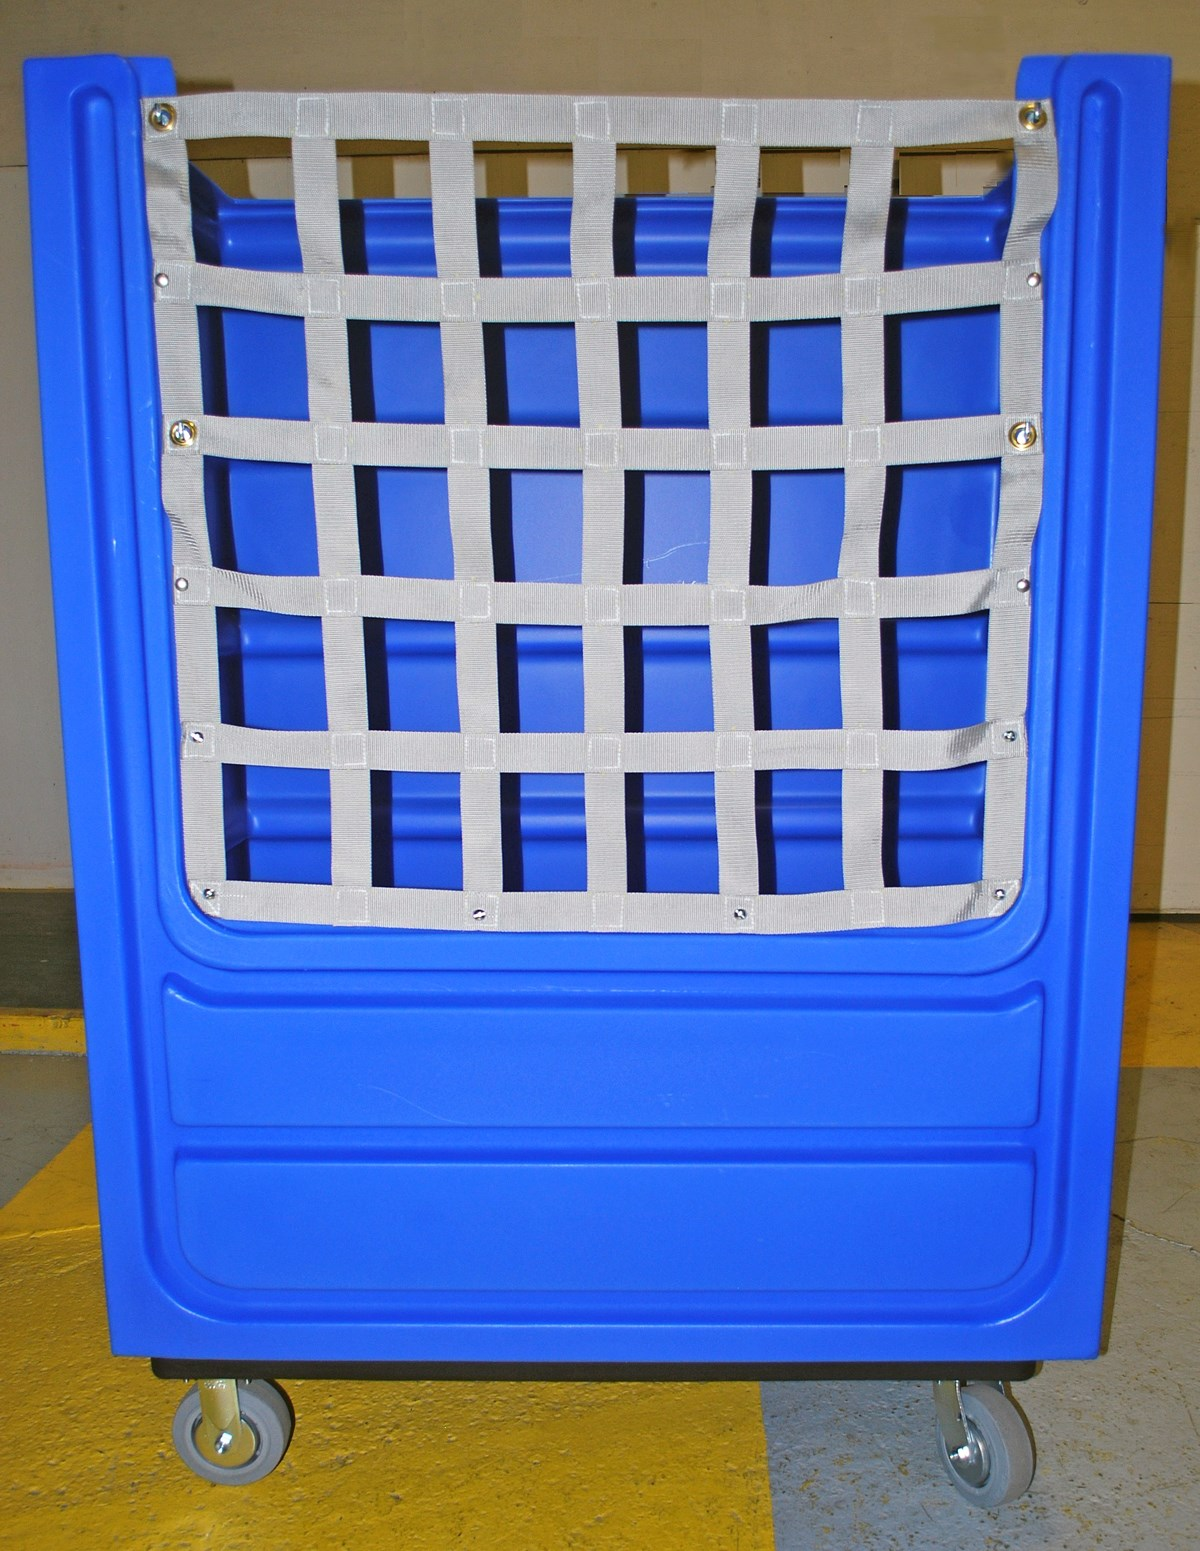 Bulk laundry cart features secure net design